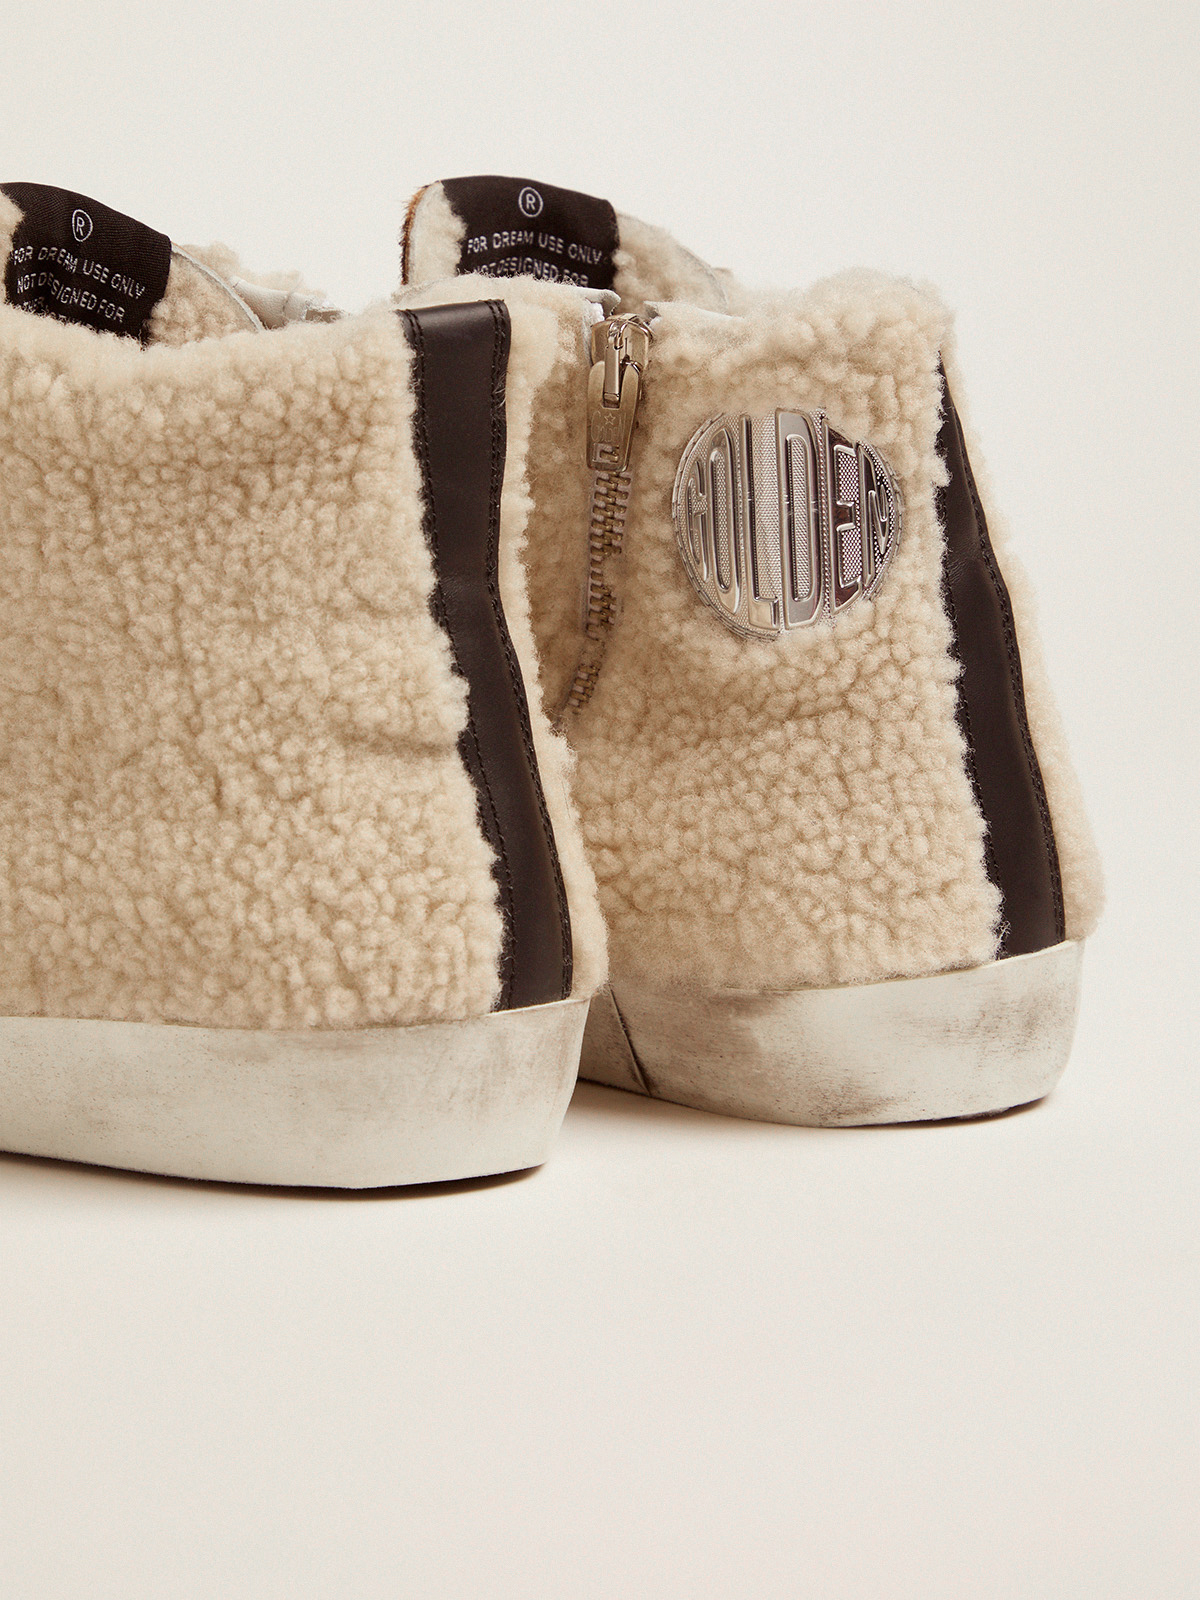 Golden Goose - Francy sneakers made of shearling and pony skin with a leopard print   in